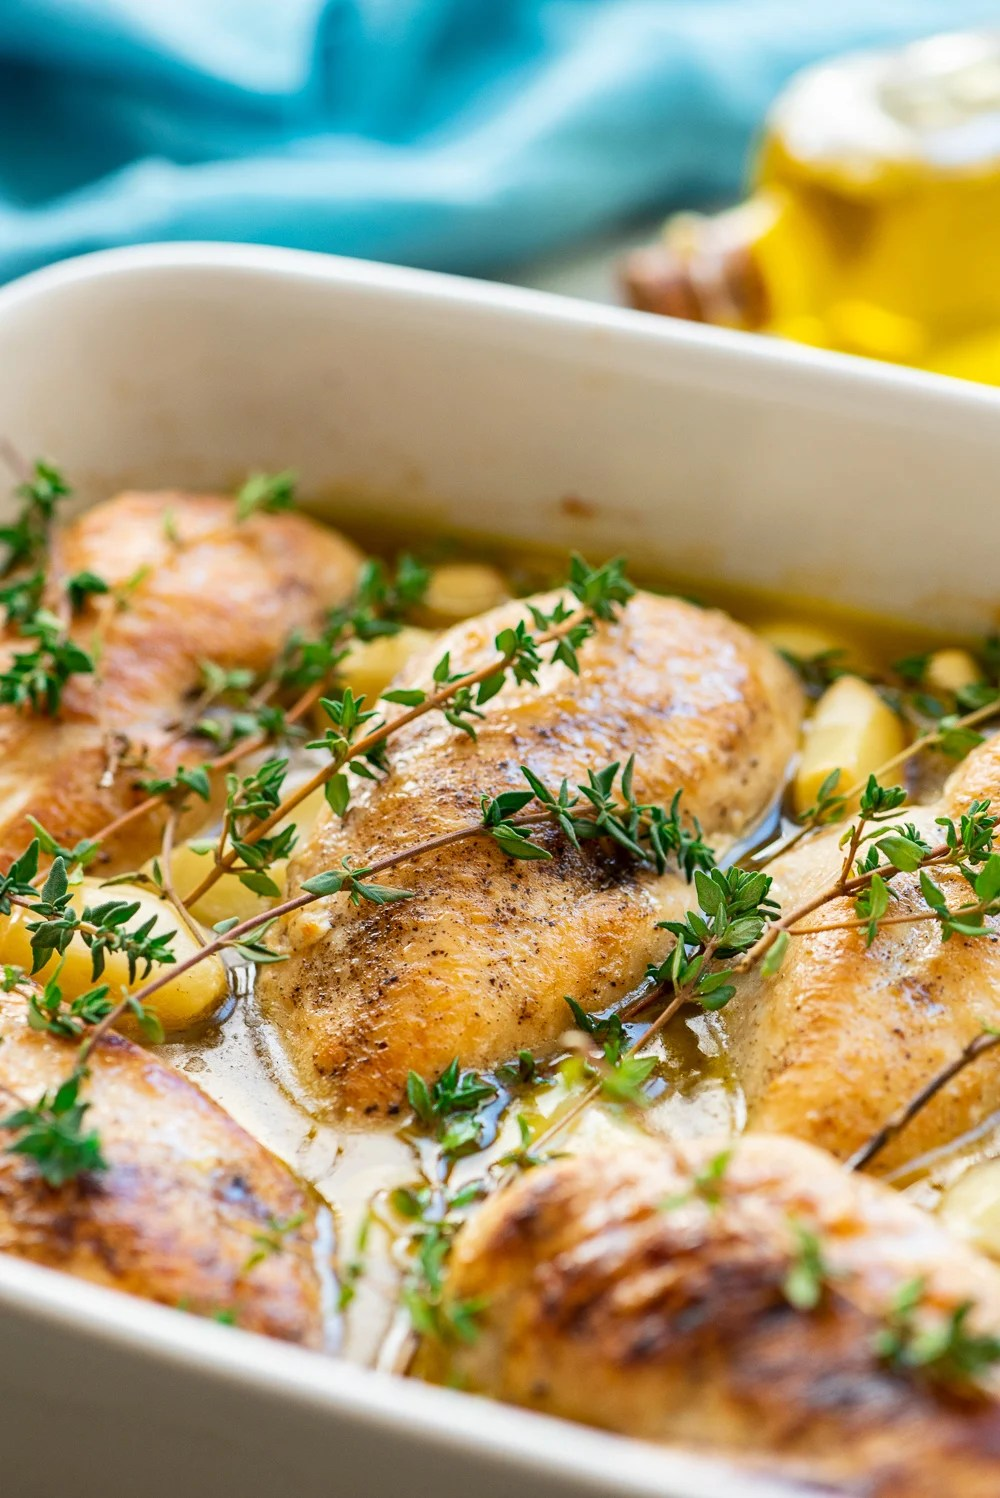 Baked Garlic Chicken in baking dish with thyme and garlic cloves.